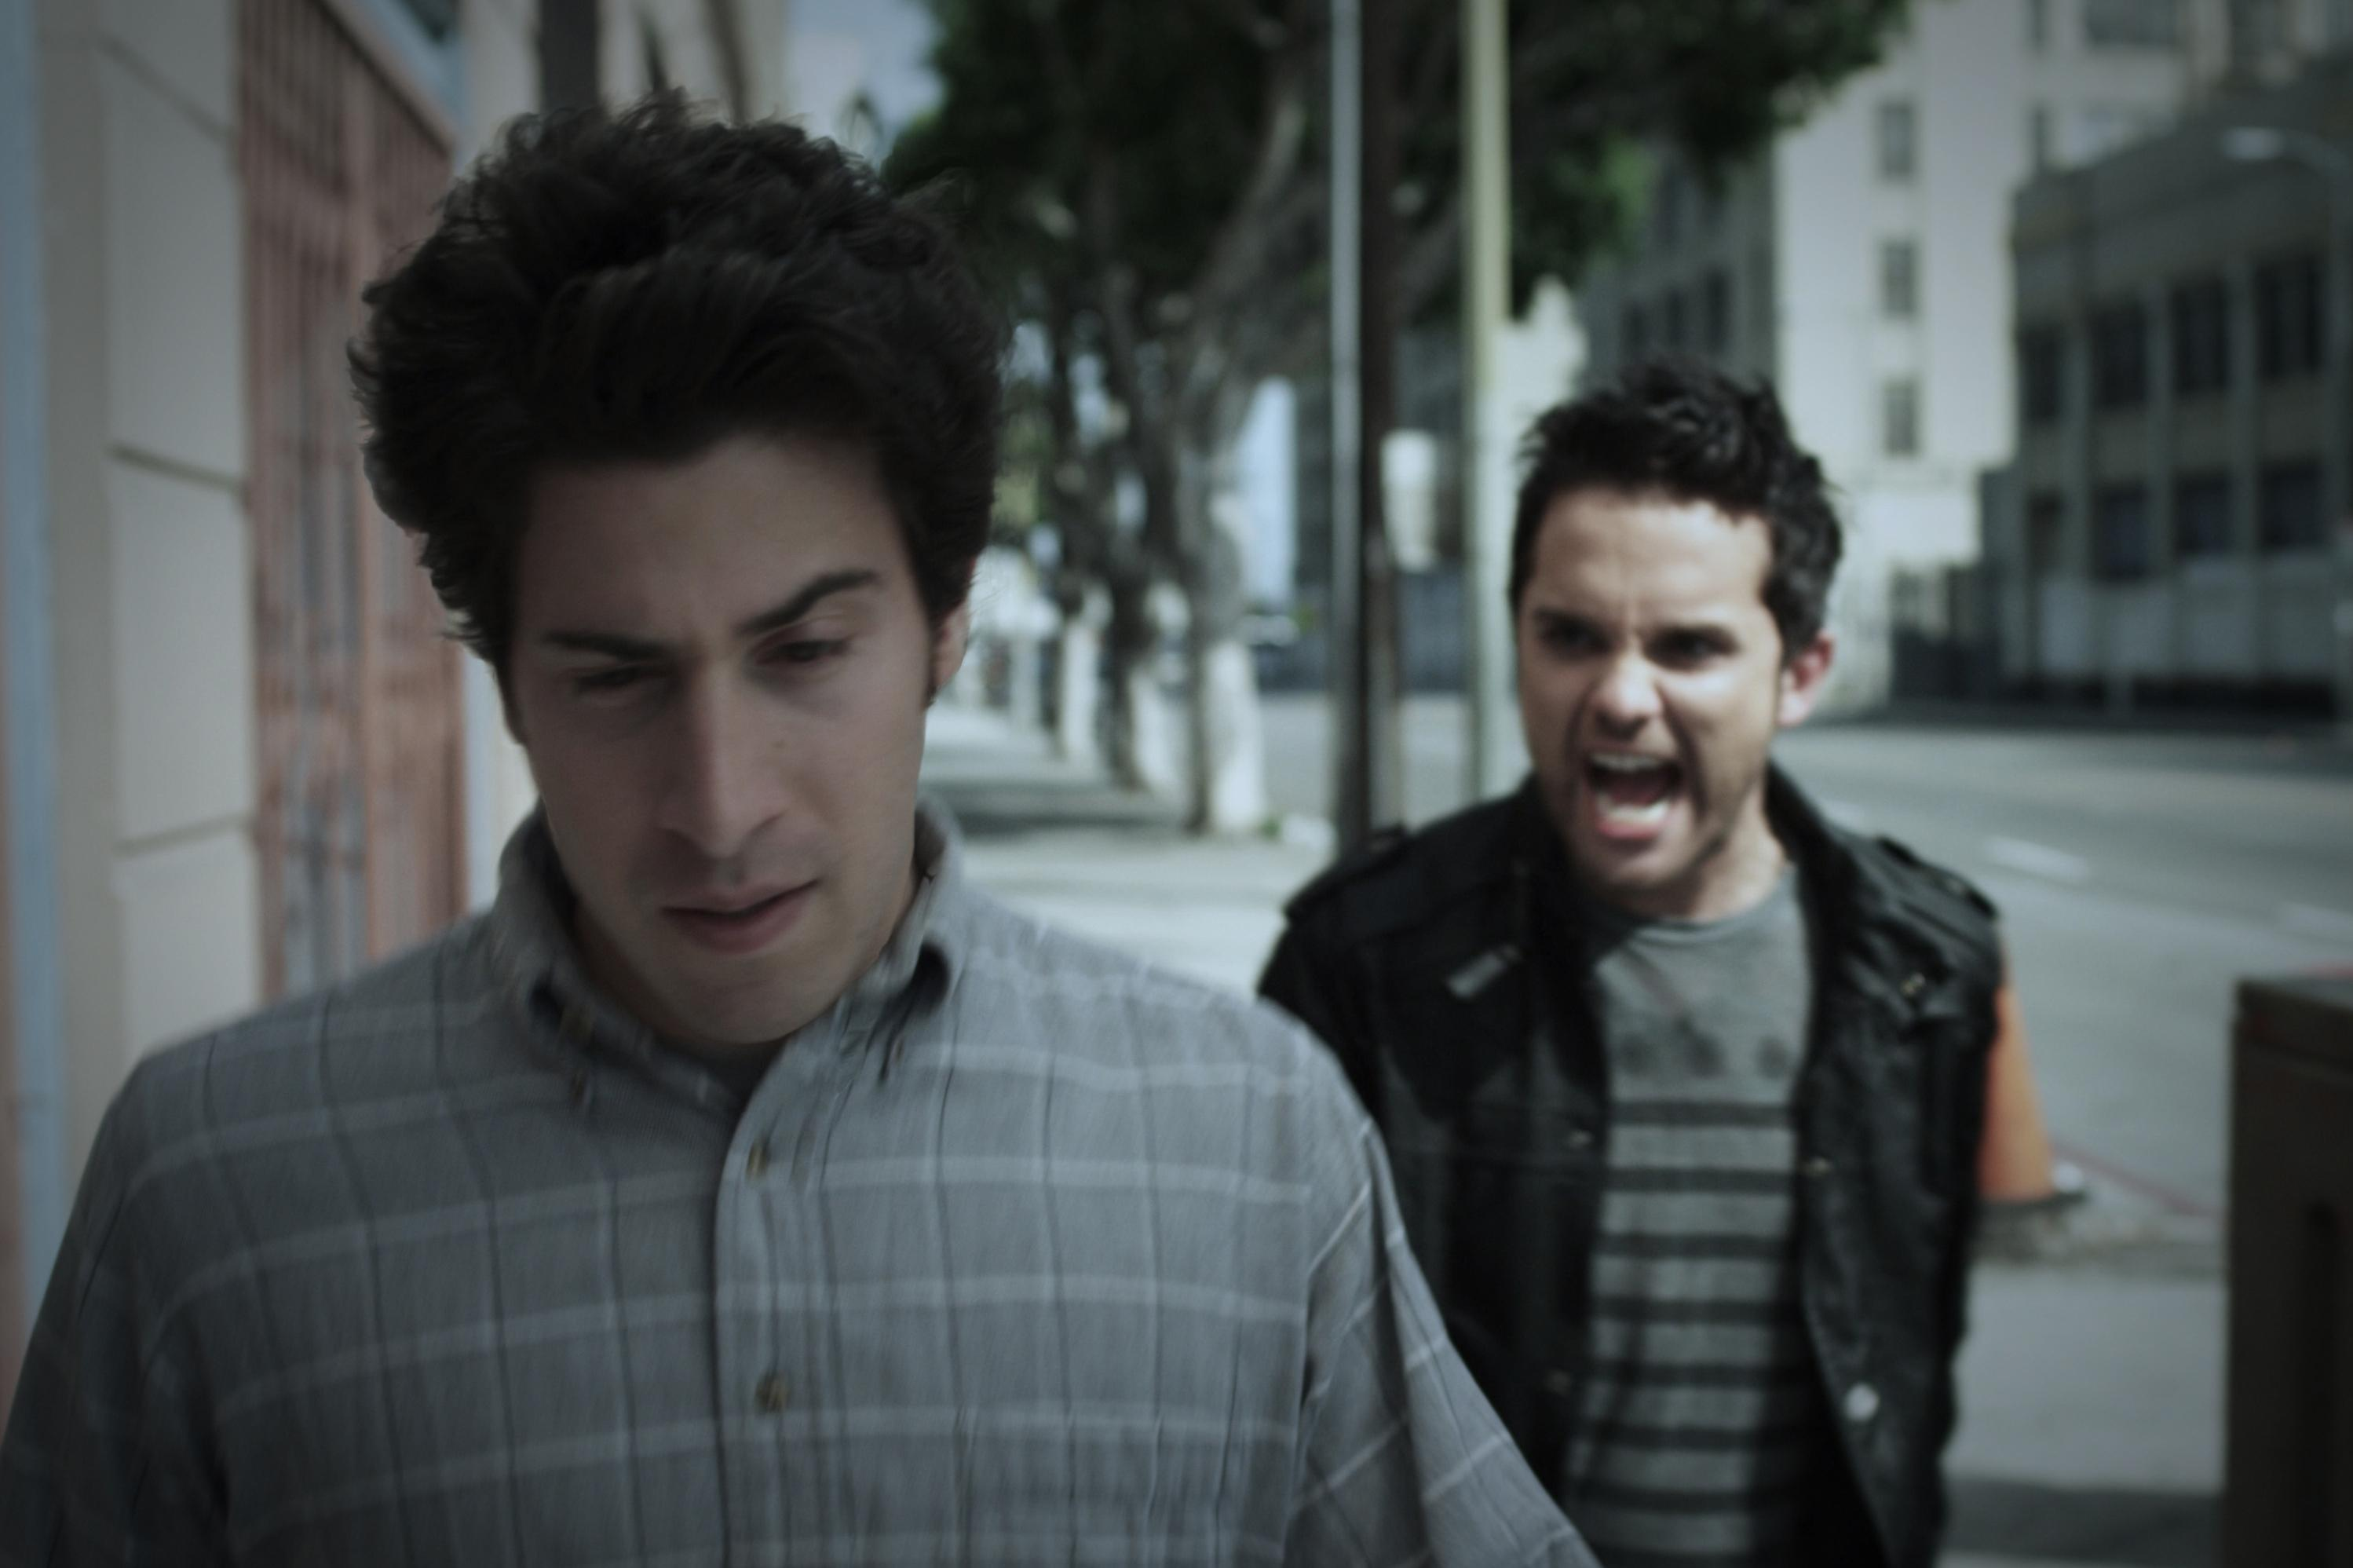 SXSW 2013: 'Snap' is a head rocking thriller with a killer score